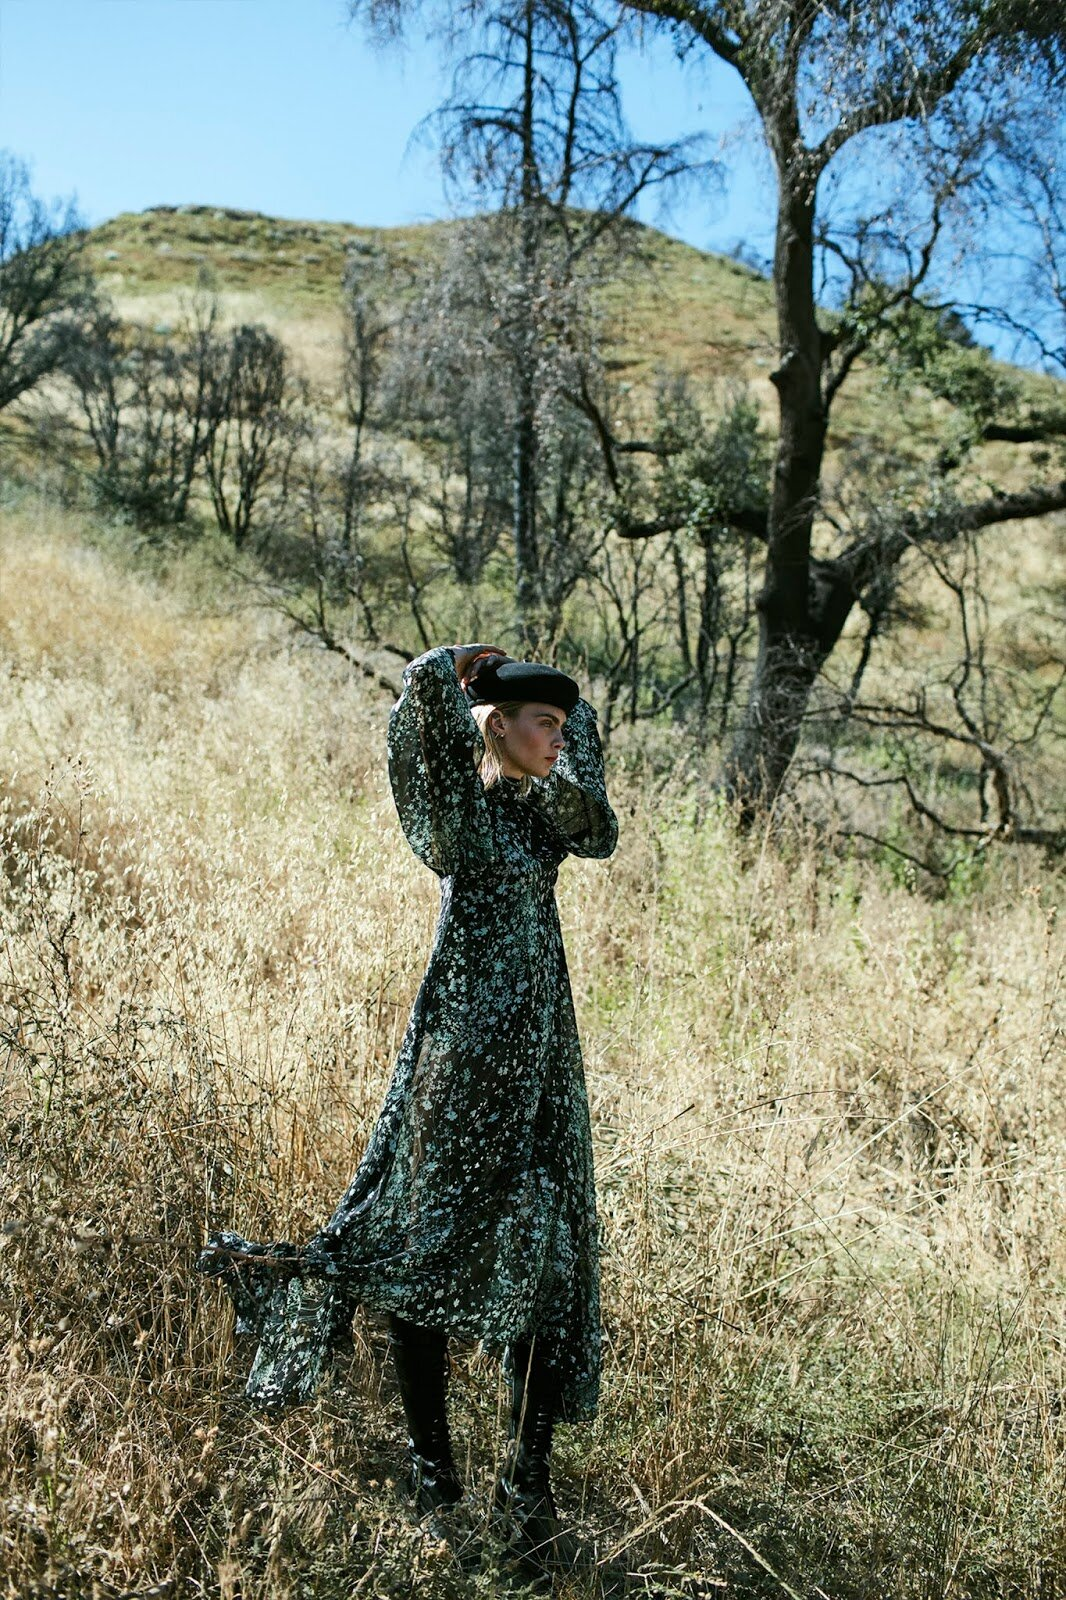 Cara Develigne by Sonia Szóstak for Porter Edit Sept. 13, 2019. Dress, Givenchy; boots, Ann Demeulemeester; beret, Eugenia Kim